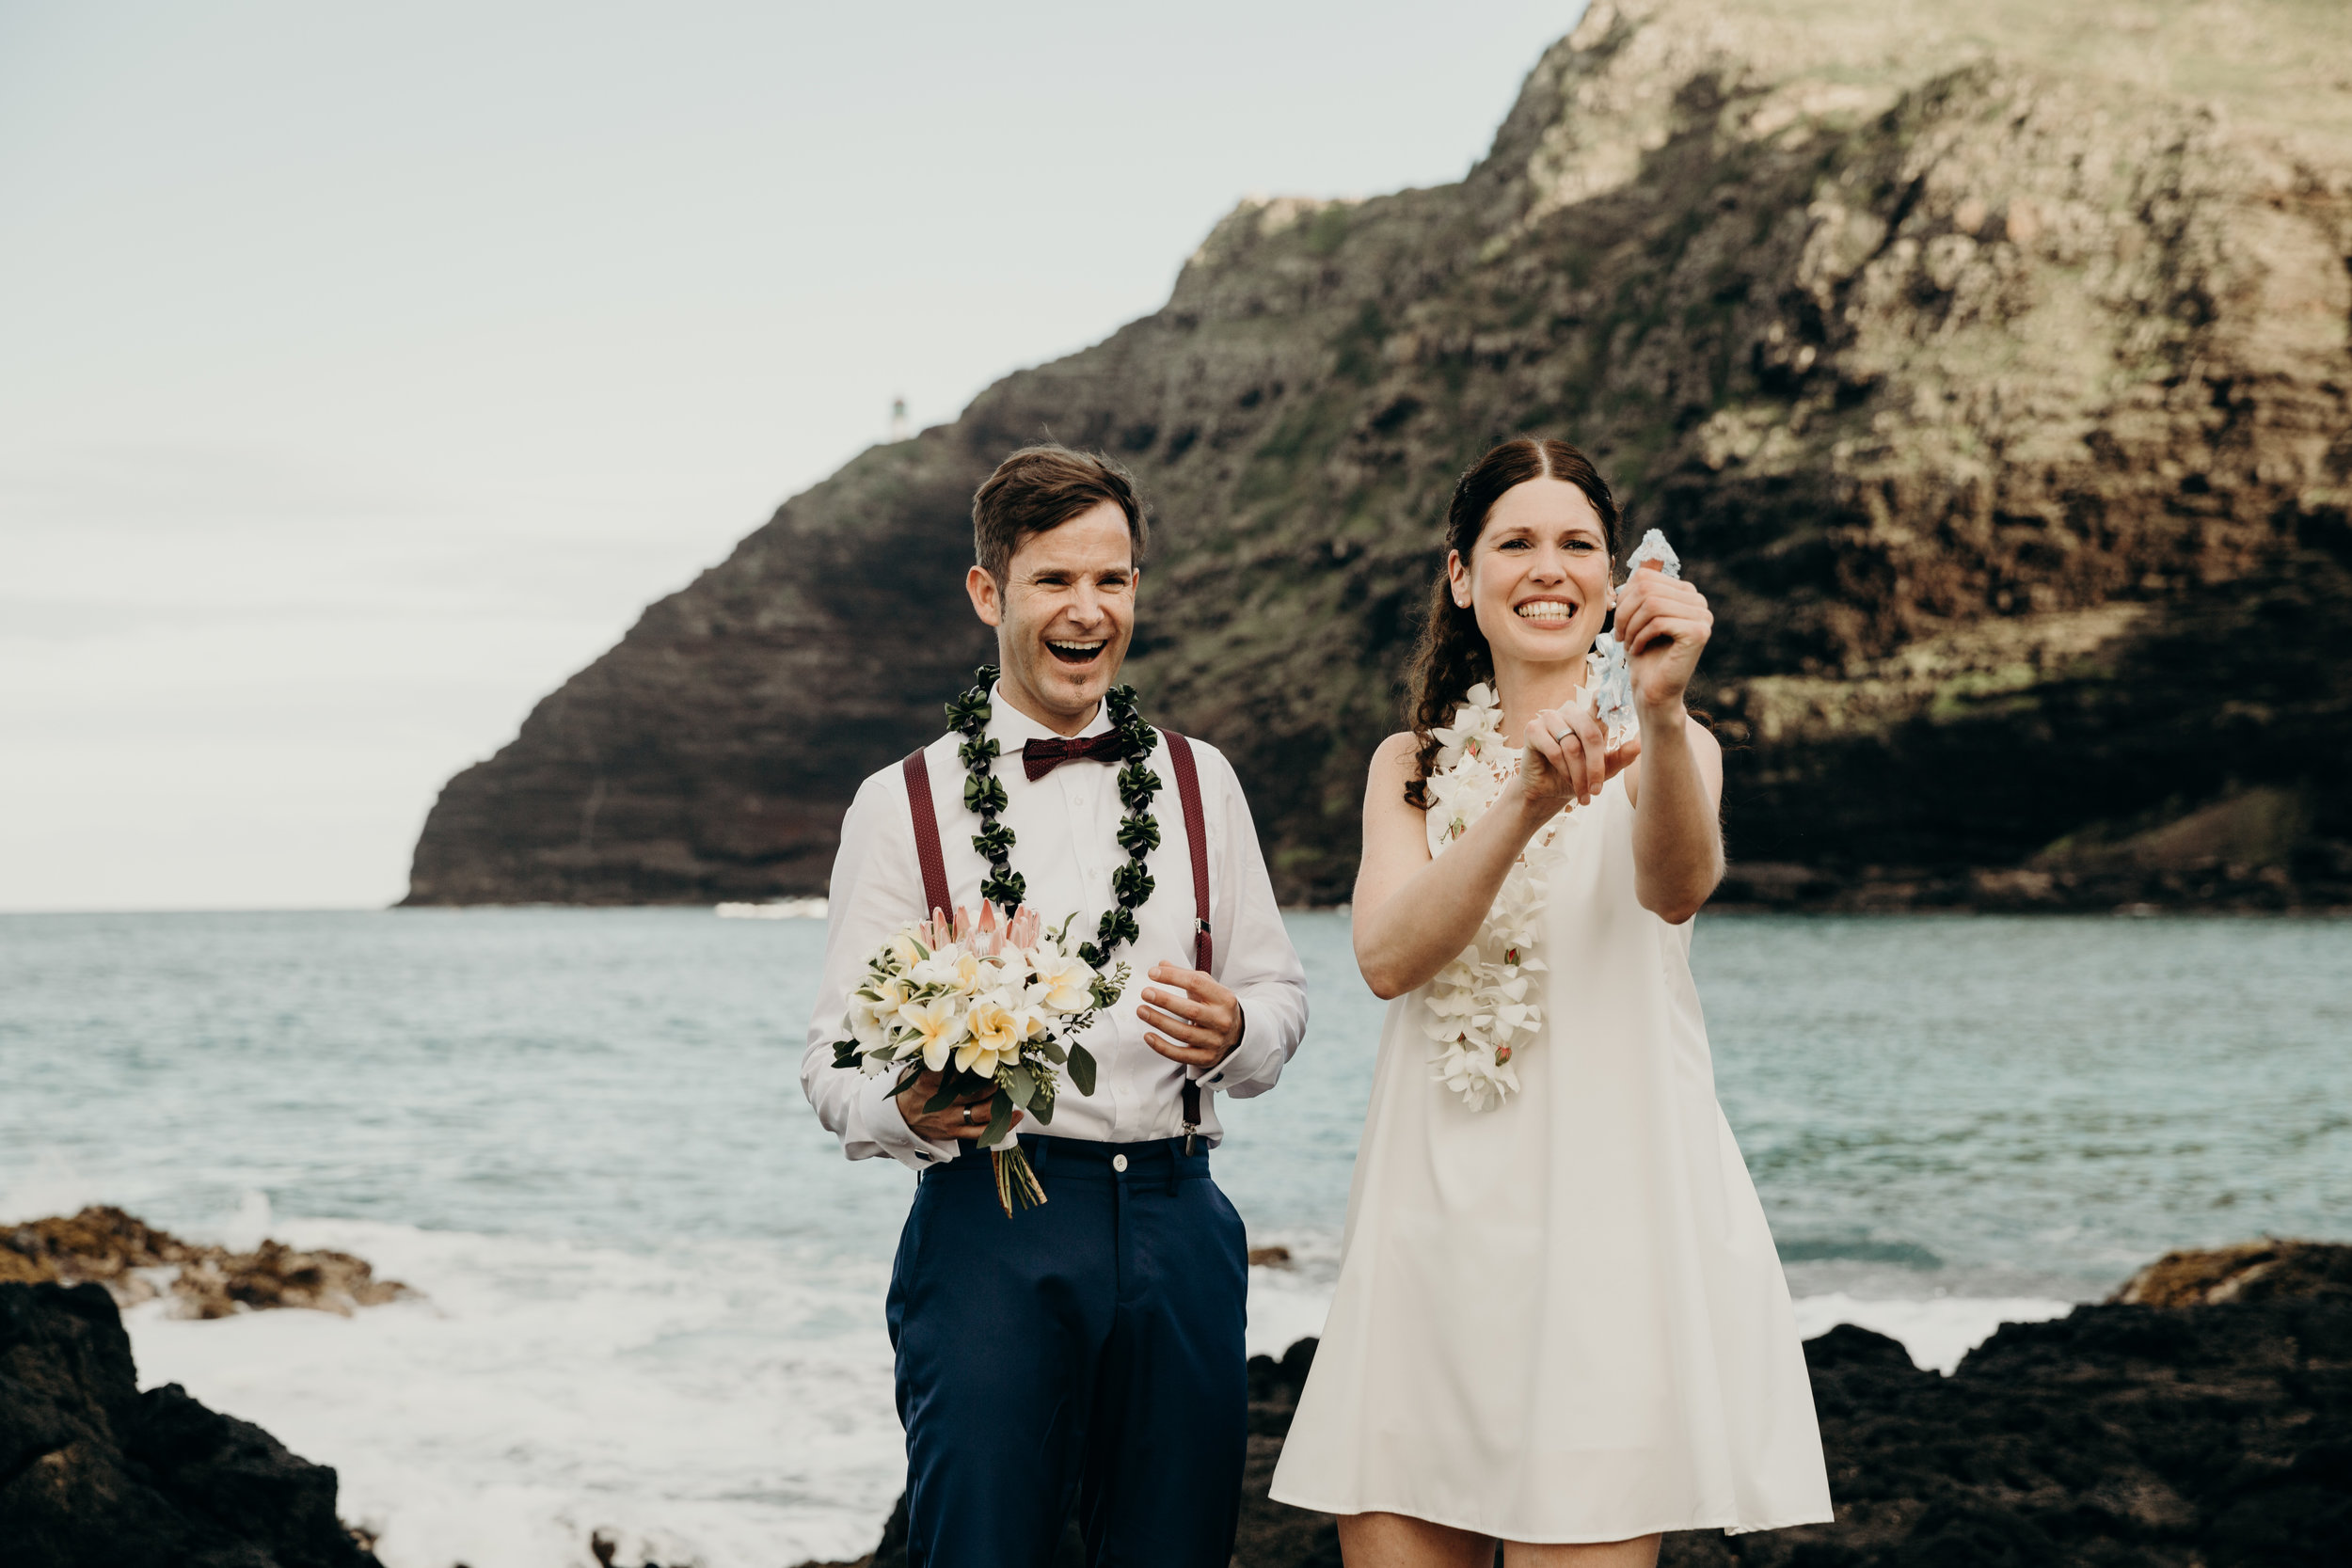 hawaii-elopement-photographer-11.jpg